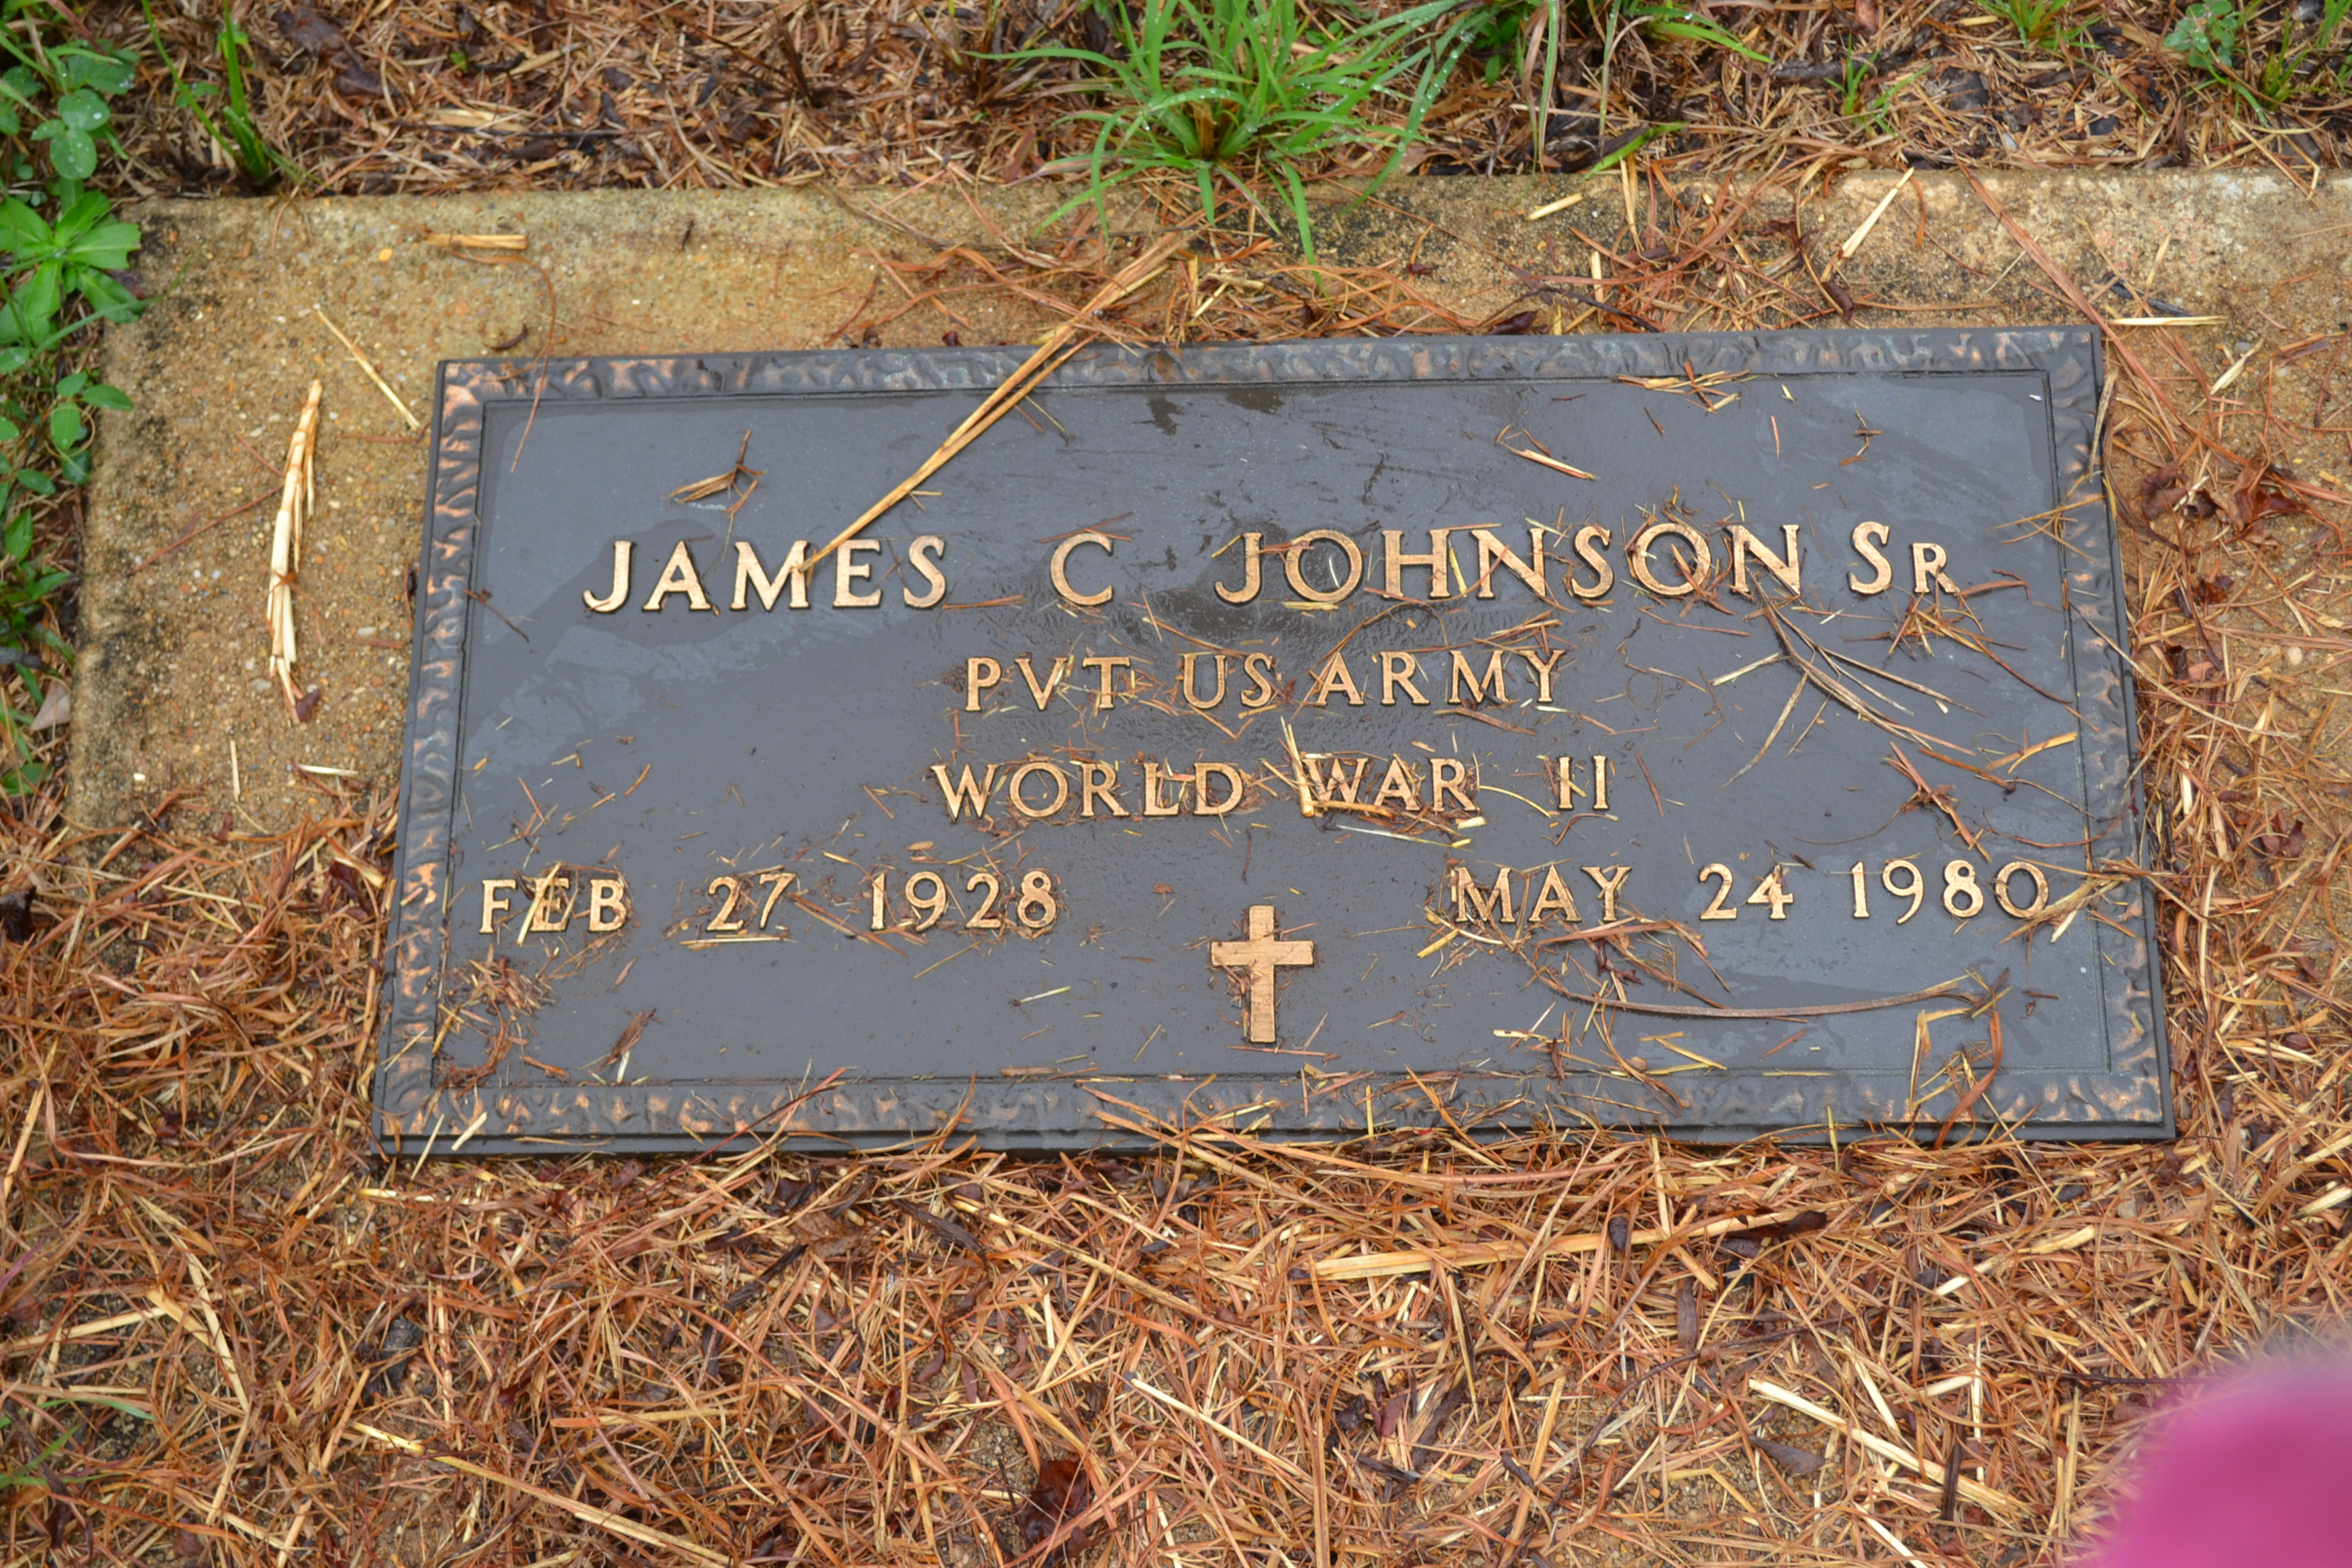 James C. Johnson, Sr